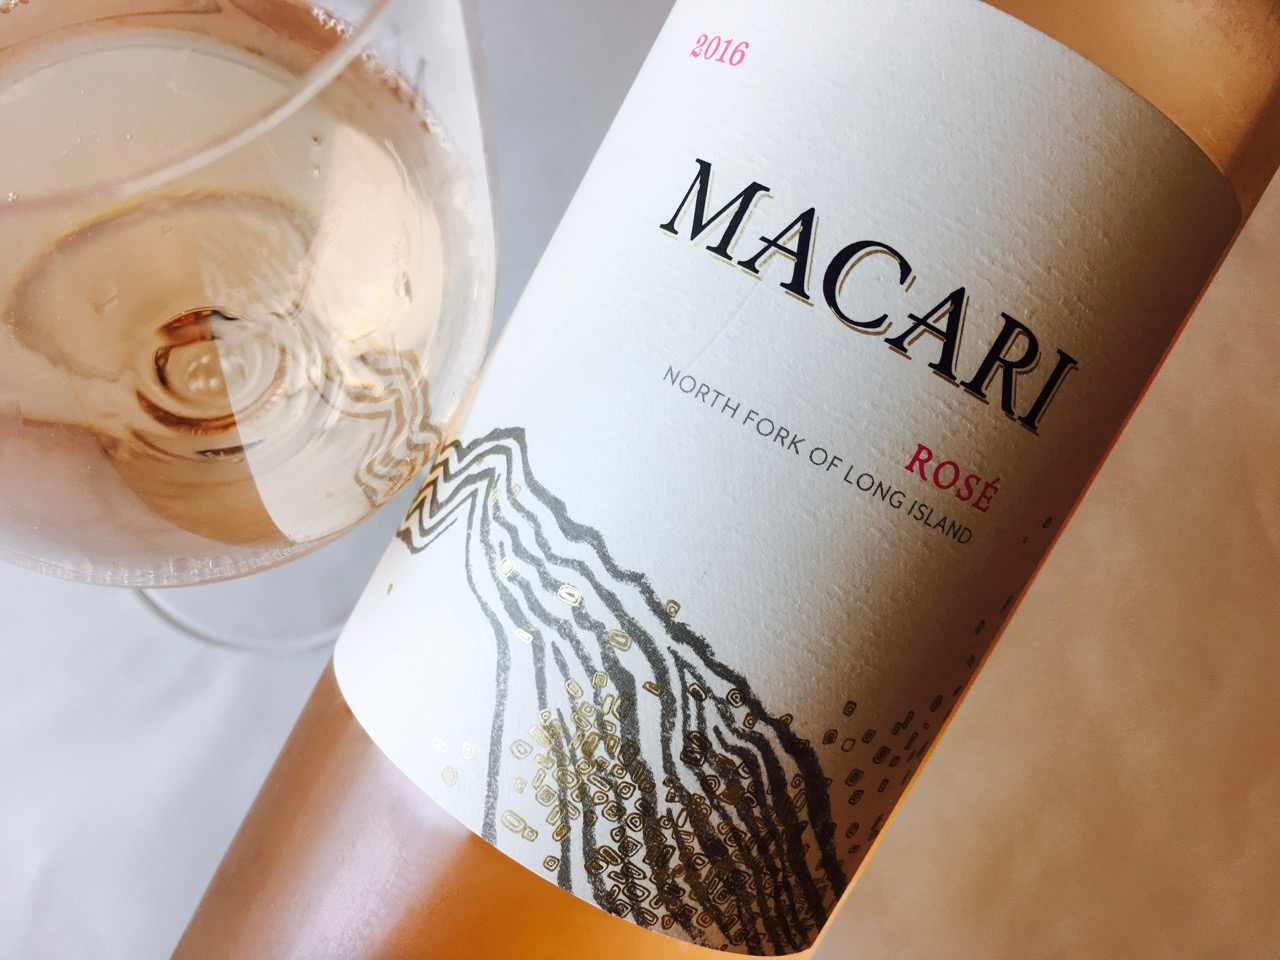 2016 Macari Vineyards Rosé North Fork of Long Island